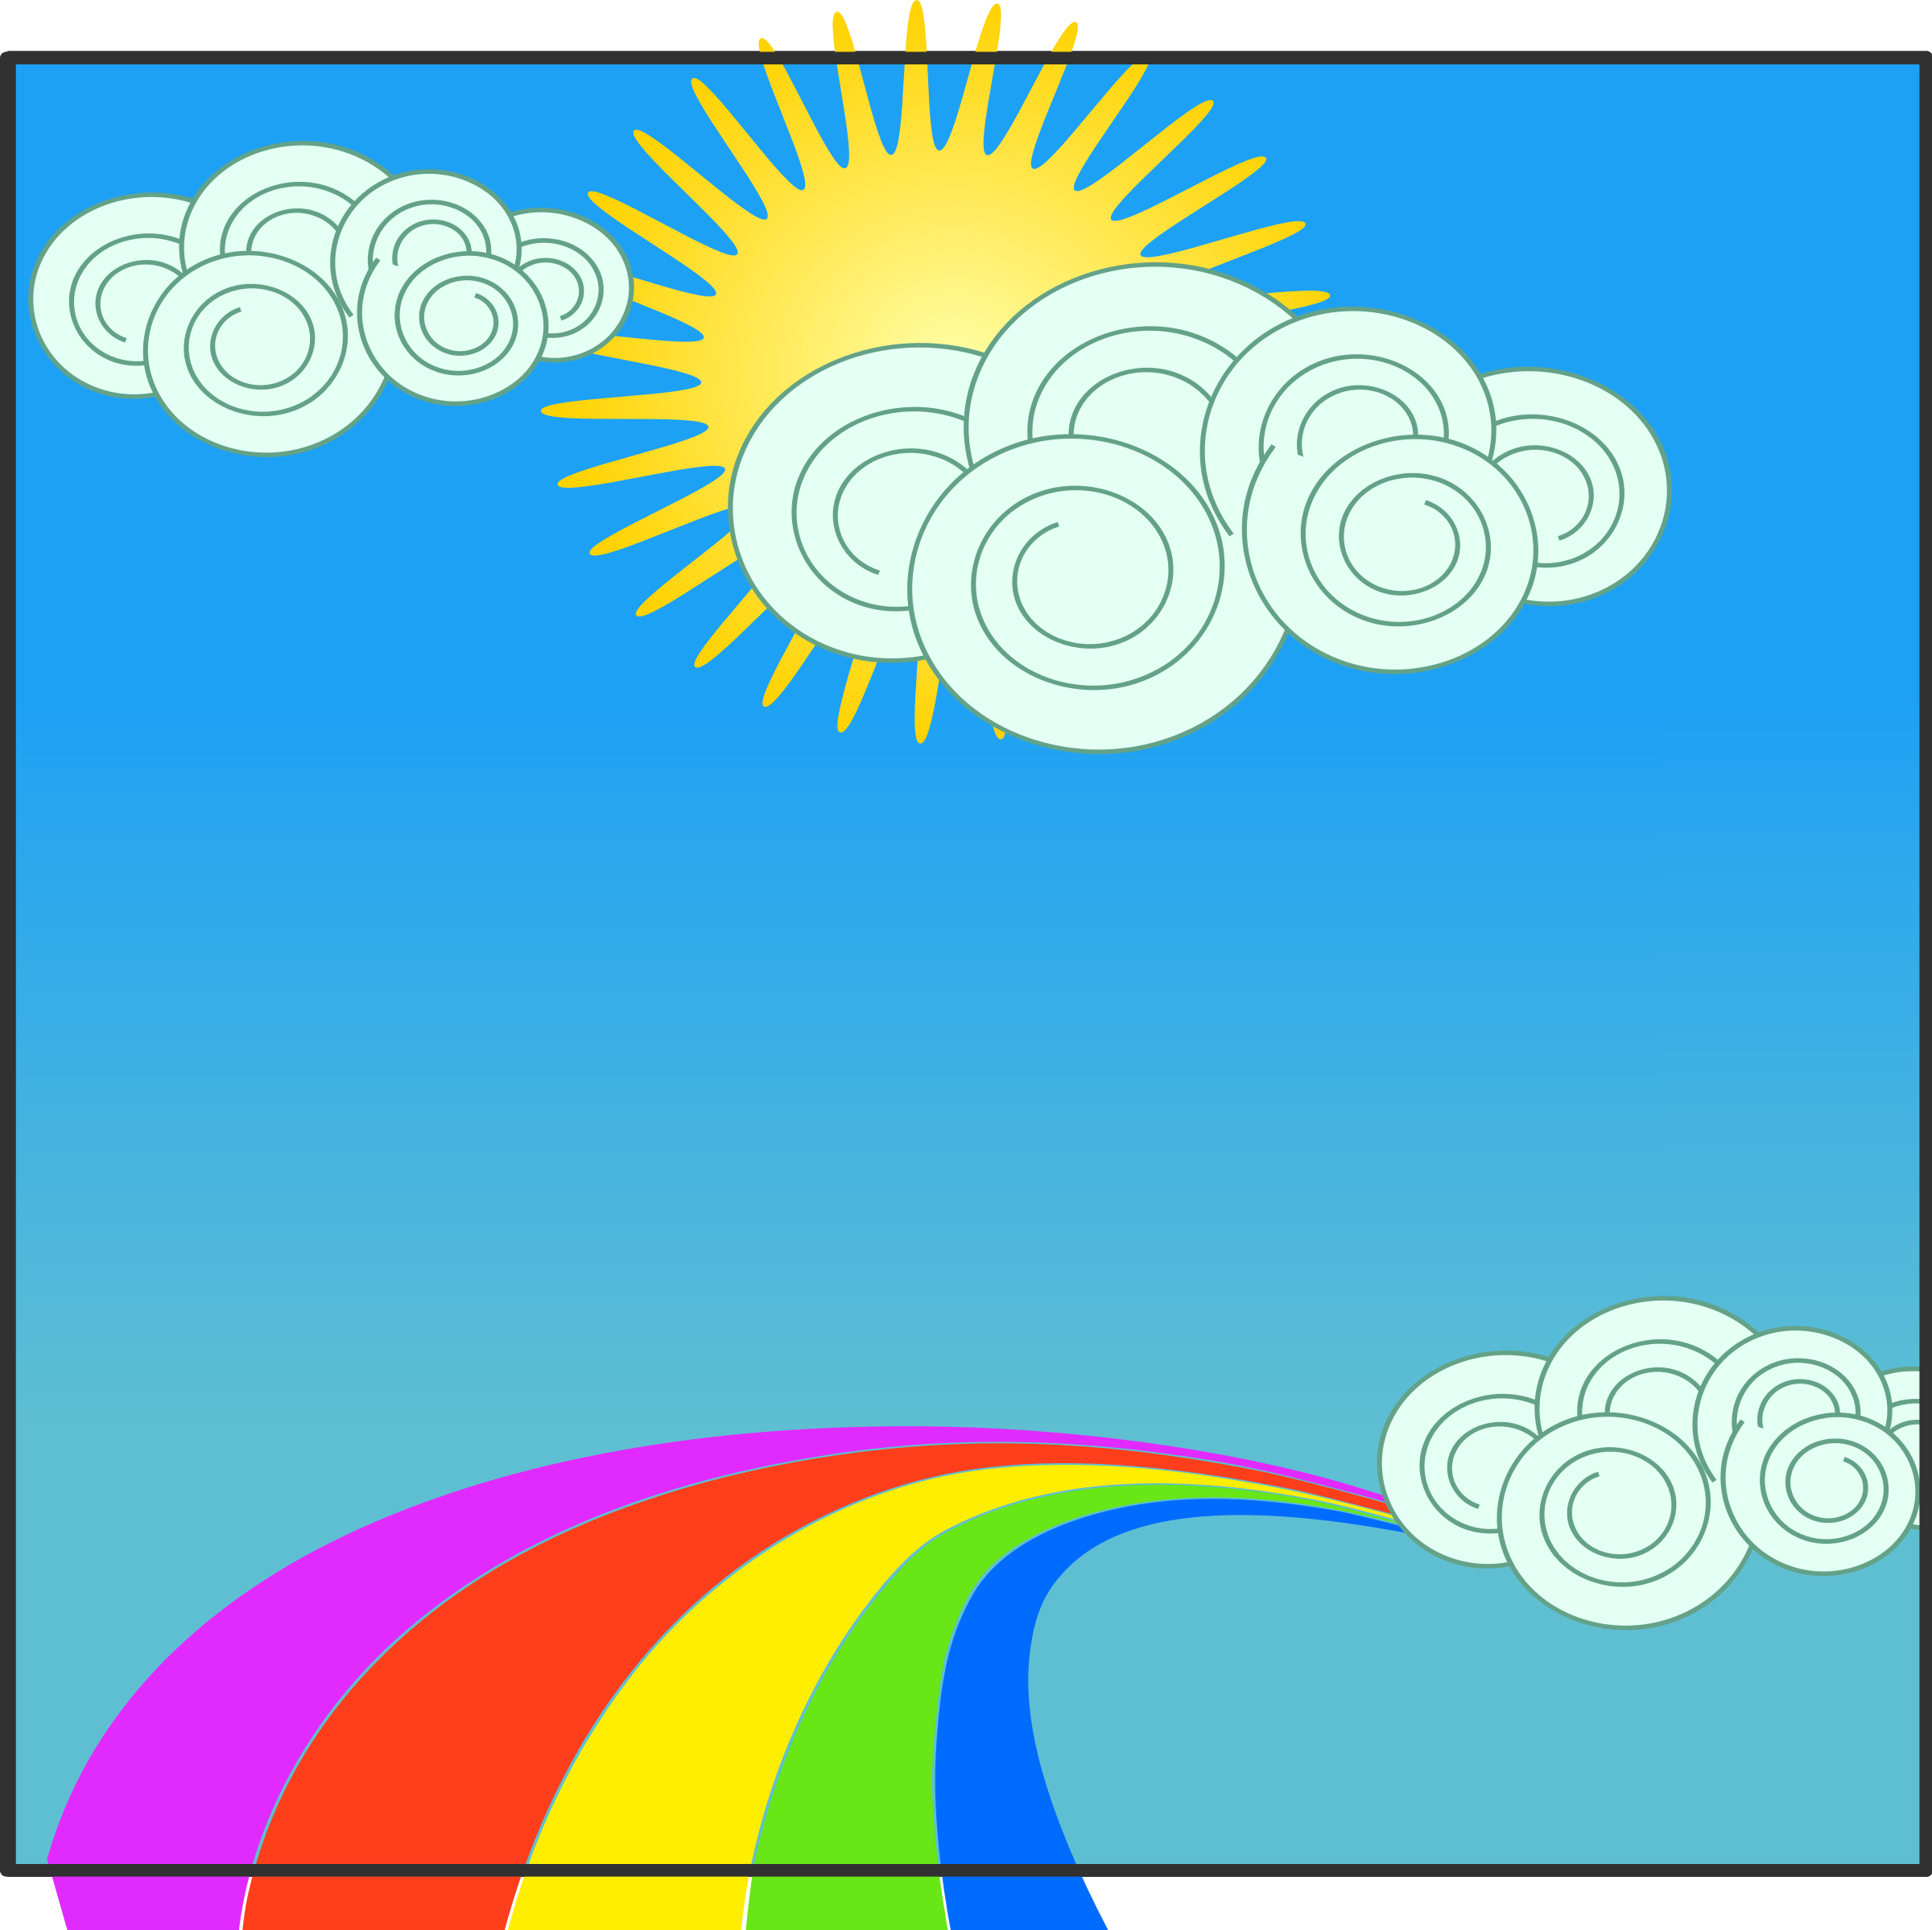 Sun, sky, clouds, and rainbow by anarres